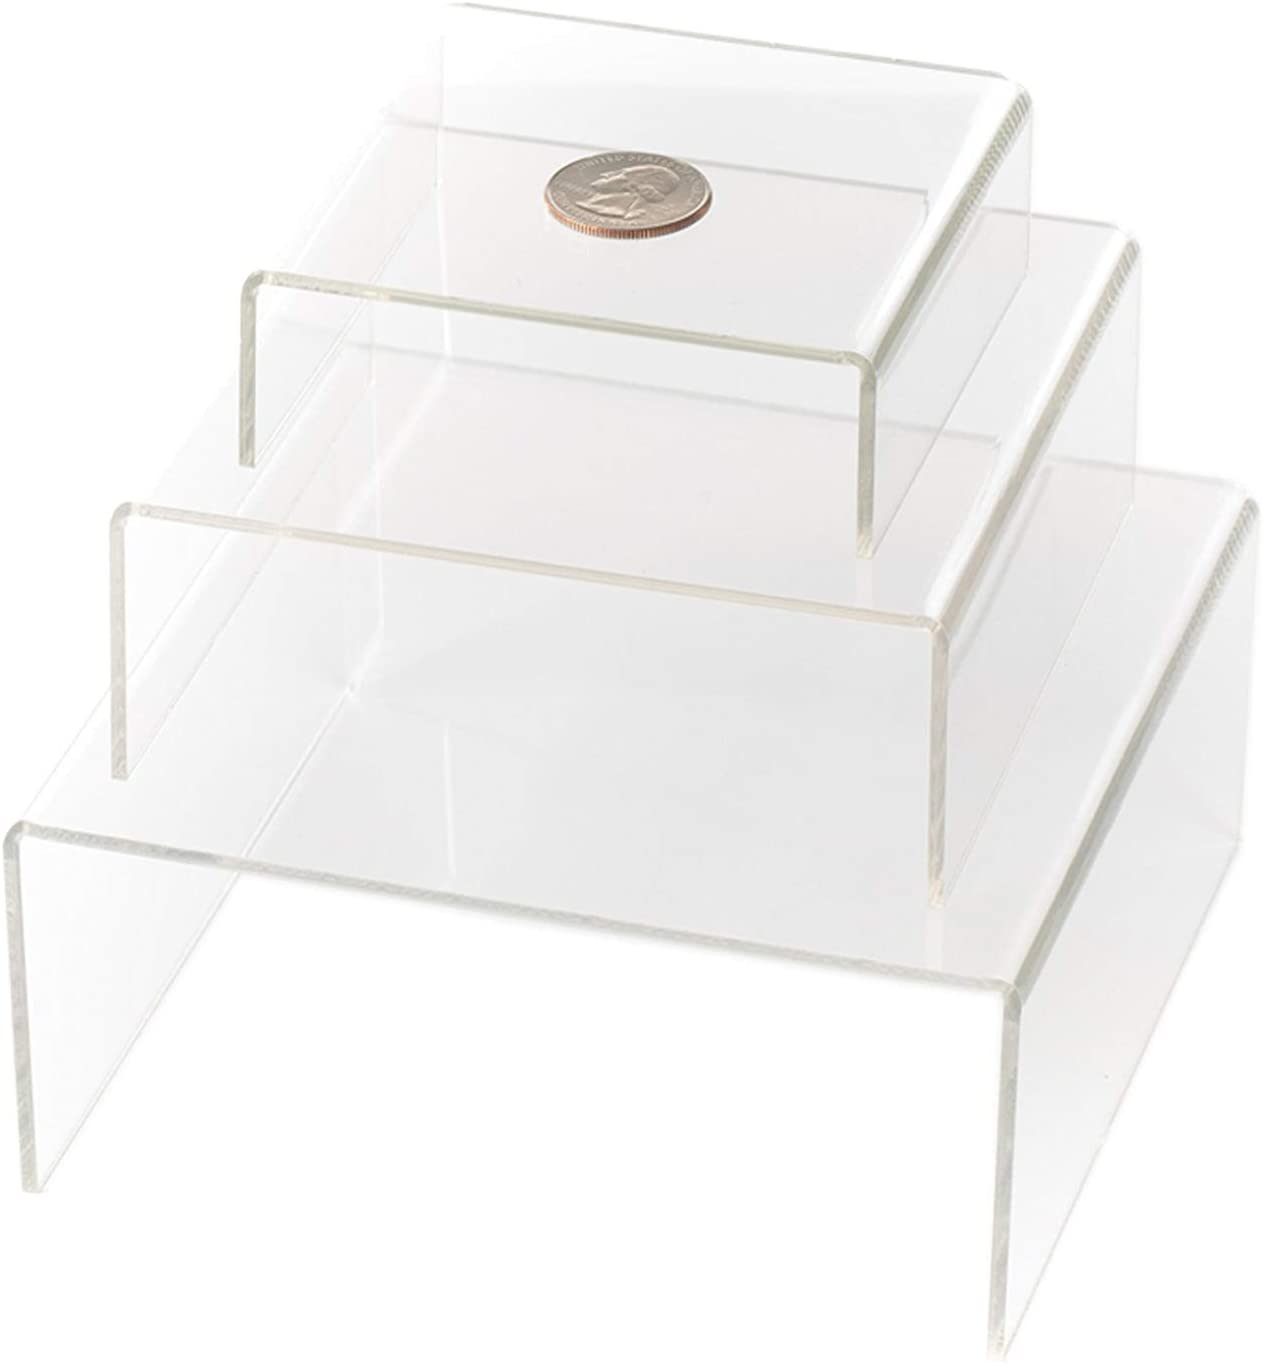 HUJI Clear Medium Low Profile Set of 3 Acrylic Risers Display Stands (1 Set, Clear Acrylic Risers)